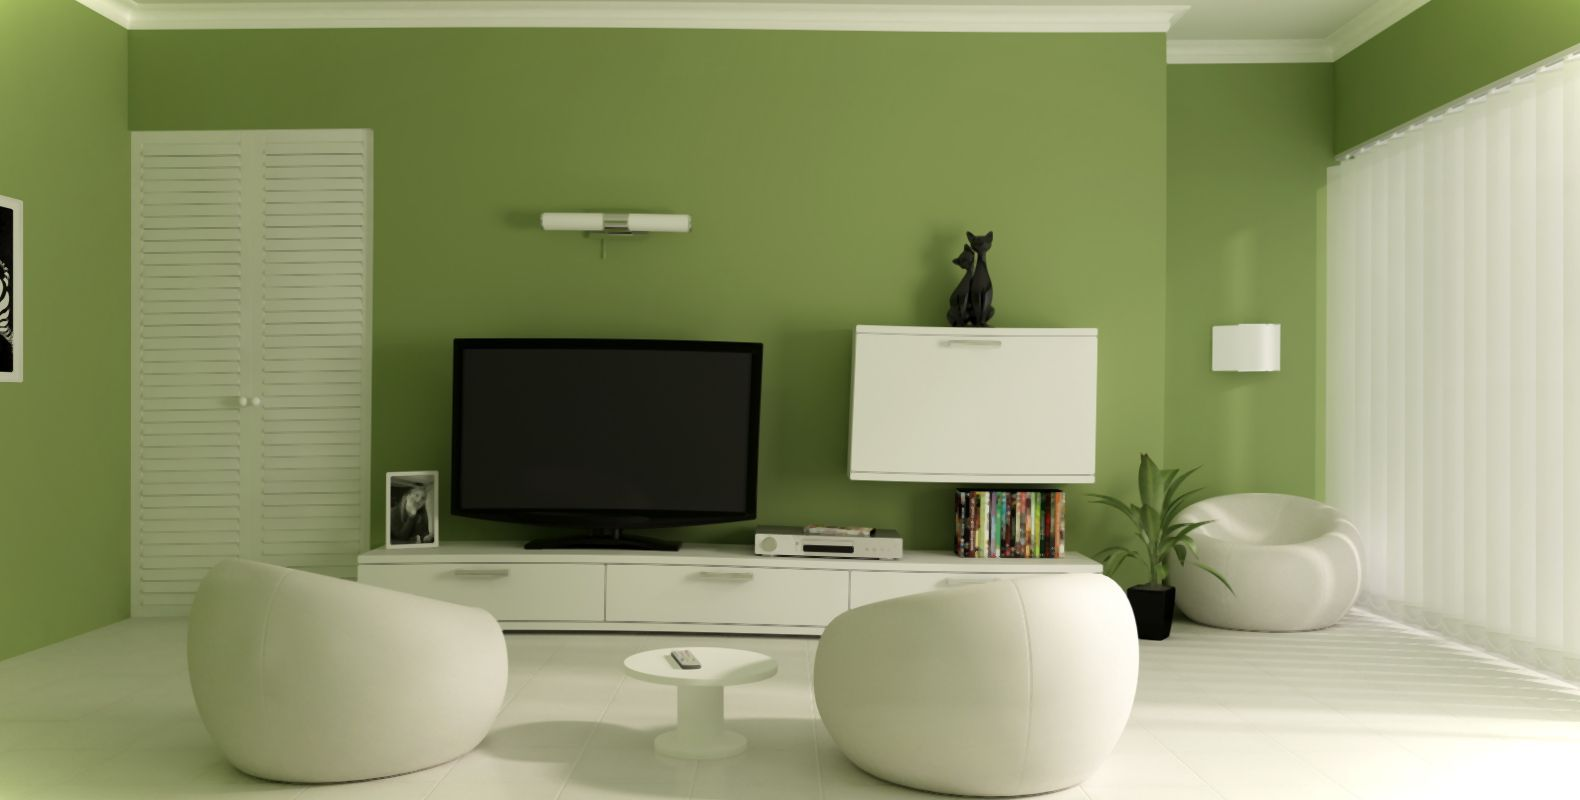 Green Wall Paint beautiful small living room design with green wall paint color and